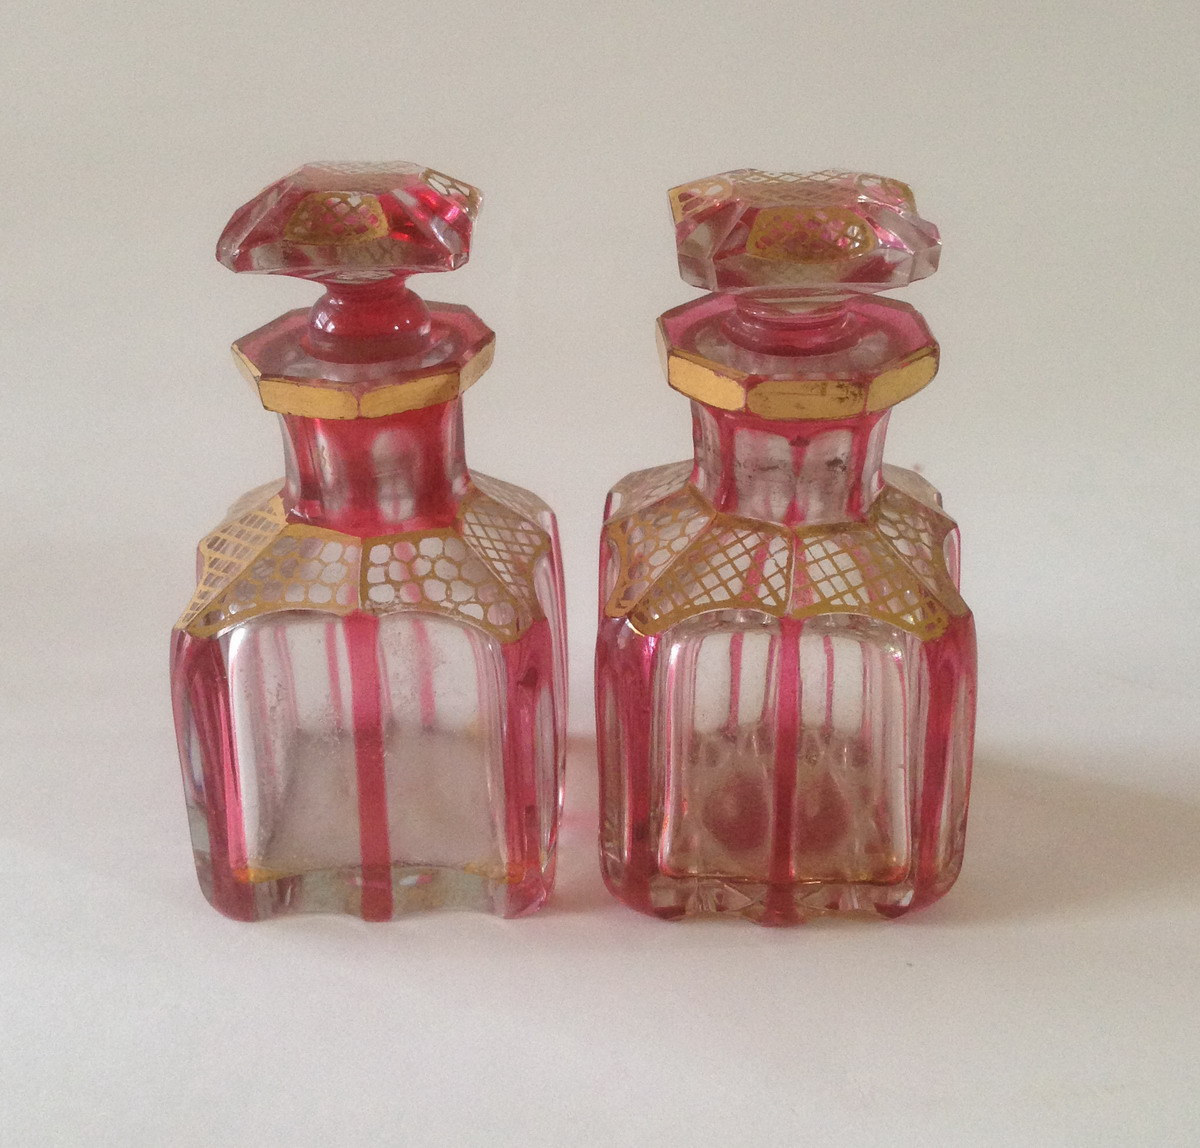 Pair of Ruby Flashed Perfume Bottles